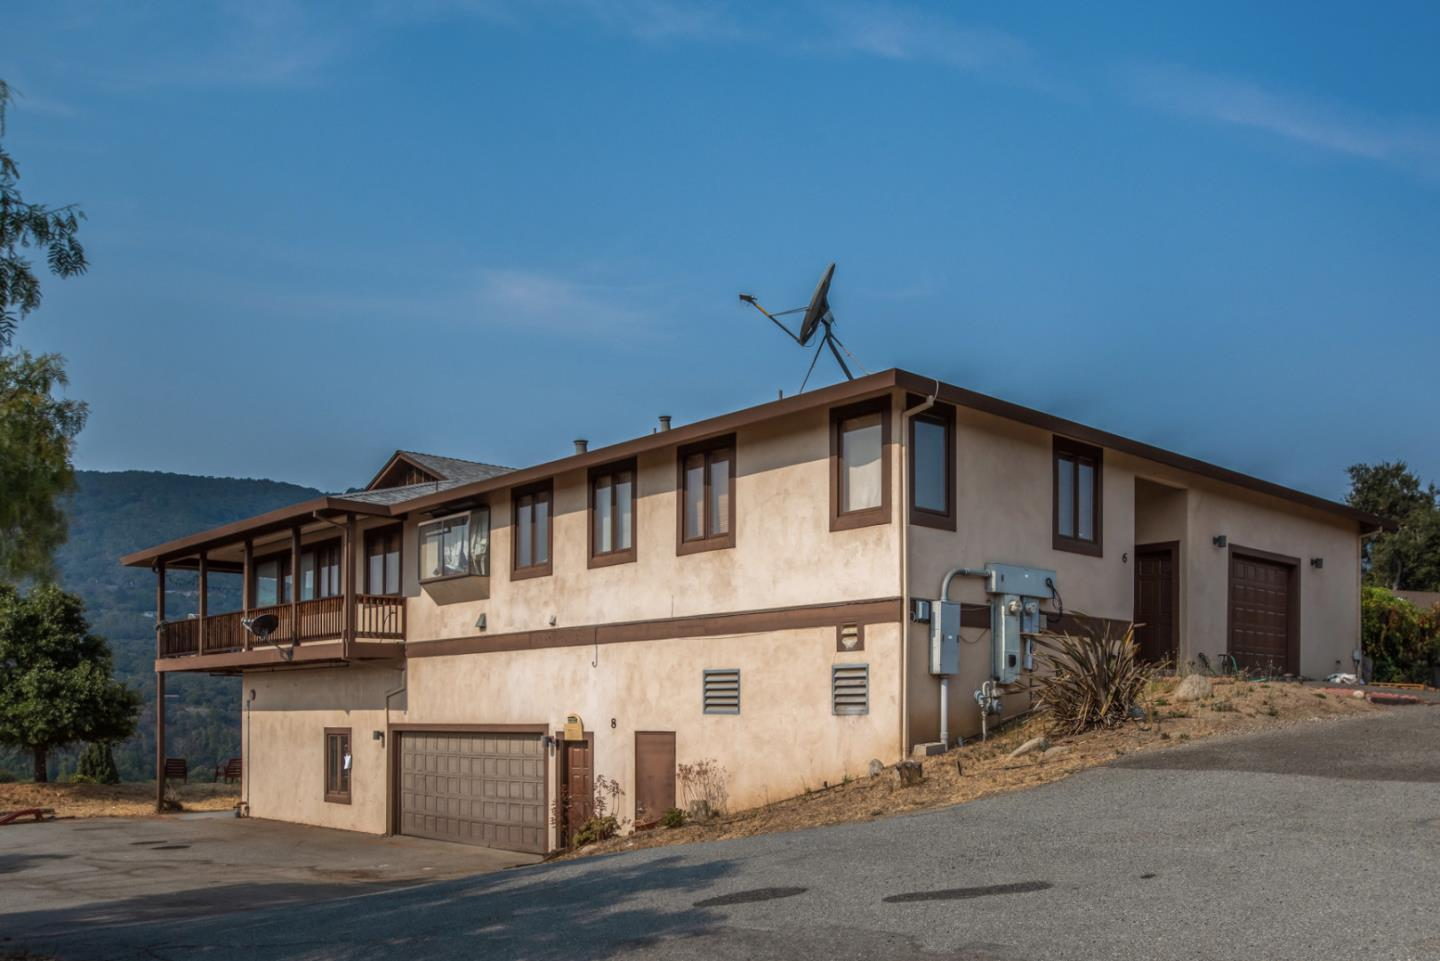 Property for sale at 6 Via Contenta, Carmel Valley,  CA 93924